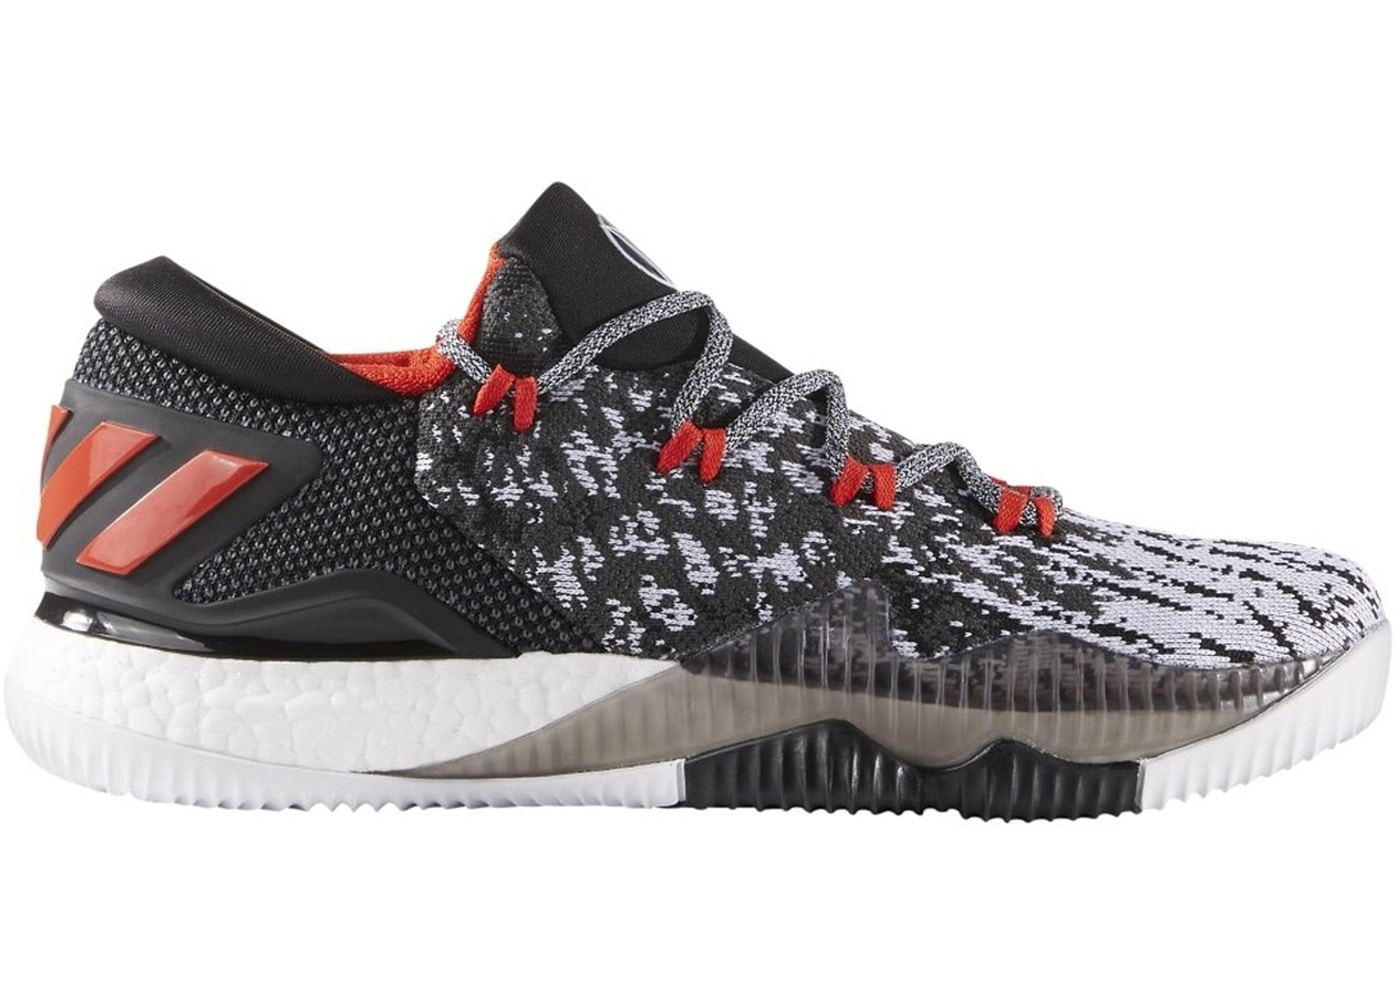 adidas Crazylight Boost Low 2016 Chinese New Year - BW0625